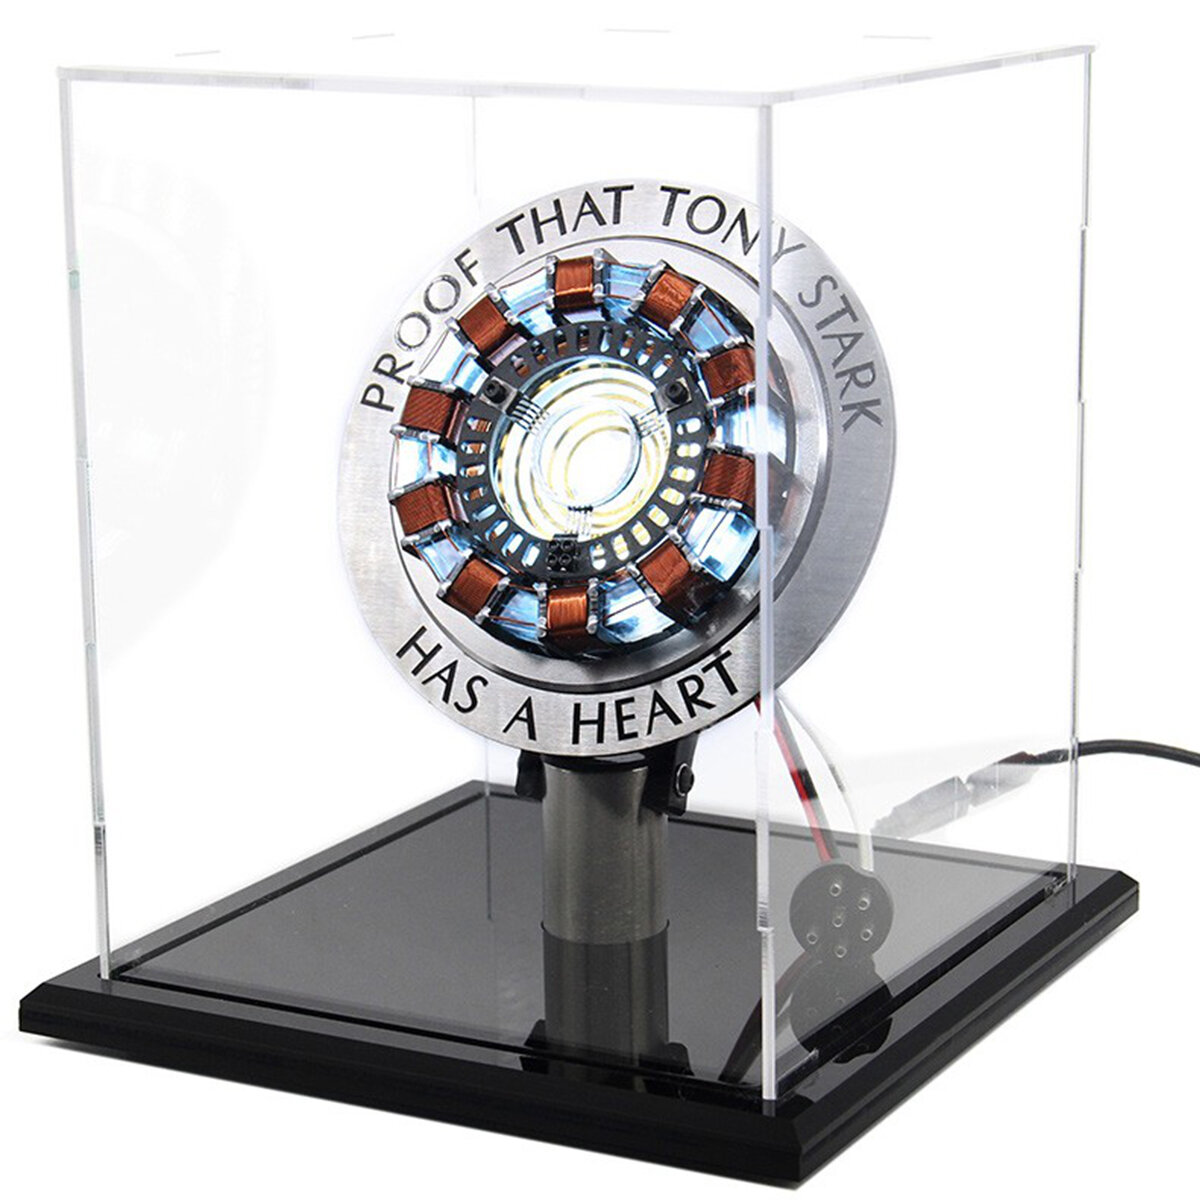 MK1 Acrylic Tony DIY Arc Reactor Lamp Arcylic Kit Illuminant LED Flash Light Set Avengers Endgame Iron man Tony Stark